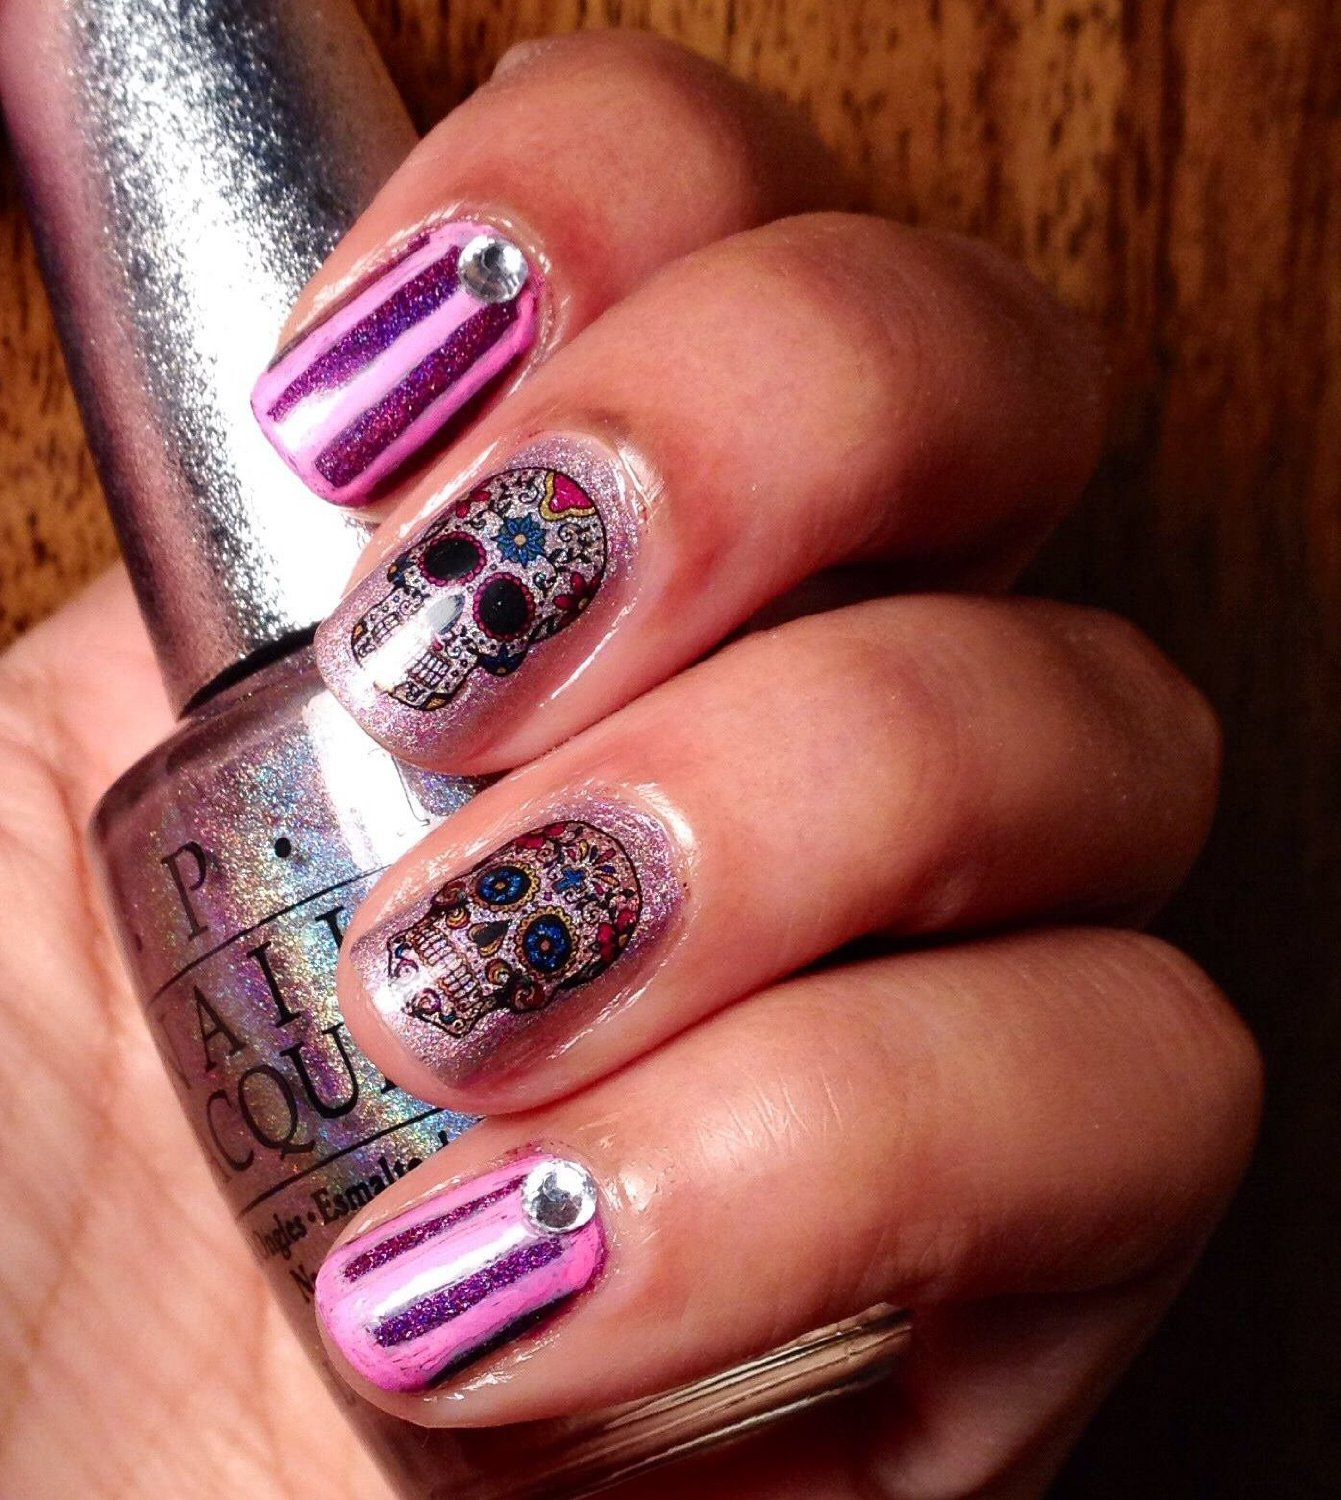 Amazon sugar skull nail art day of the dead decals assortment amazon sugar skull nail art day of the dead decals assortment 2 featured in rachael ray magazine october 2014 beauty prinsesfo Gallery